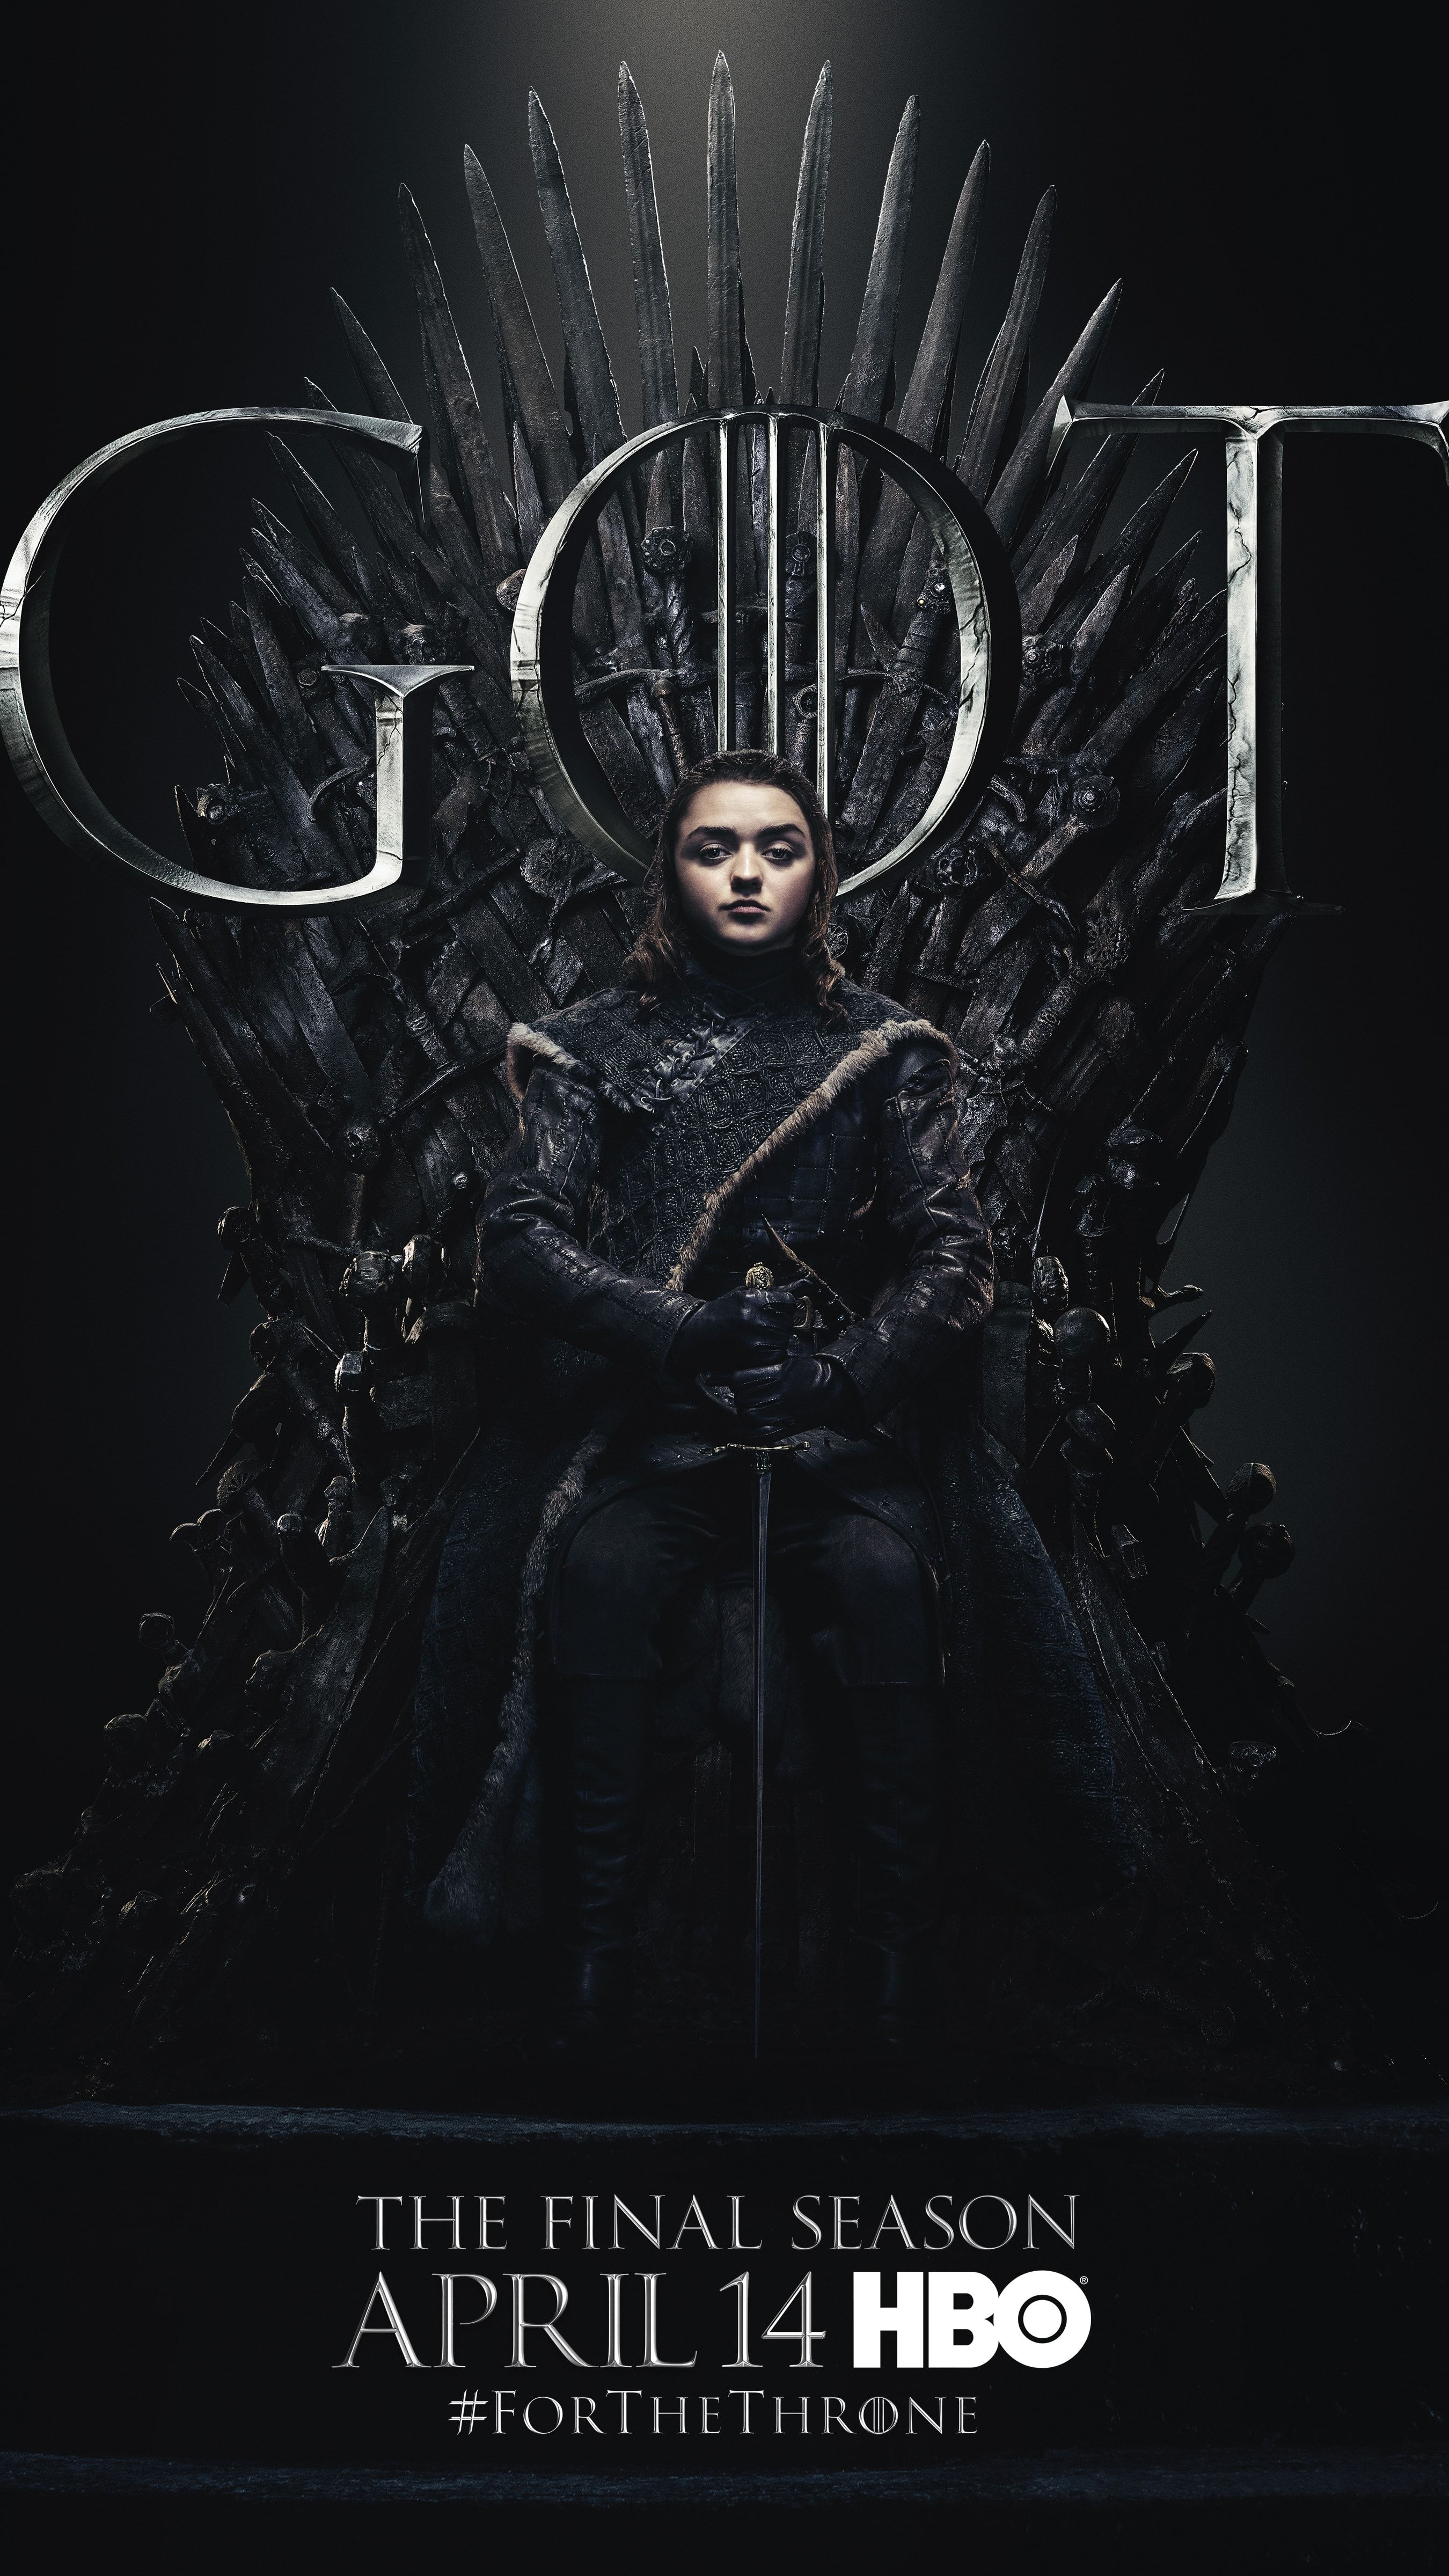 Character Posters And Twitter Emojis For Game Of Thrones Season